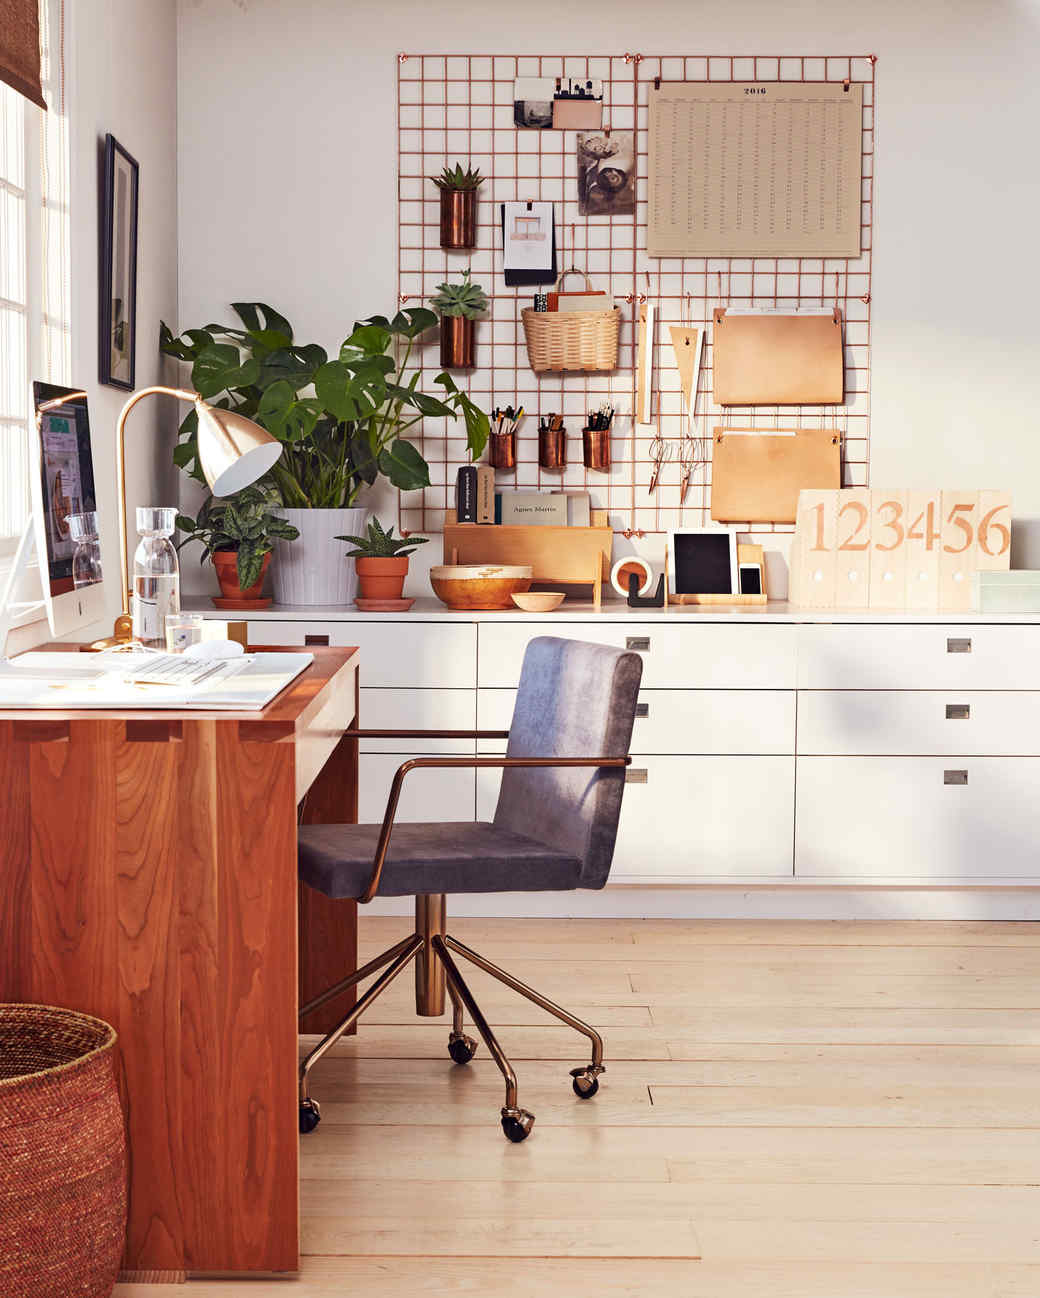 10 Easy Tips for the Ultimate Home Office | Martha Stewart Ultimate Home Office Design on ultimate workshop design, ultimate basement design, ultimate closet design, ultimate garage storage, home library design, ultimate furniture, ultimate gym design, ultimate bathroom design,